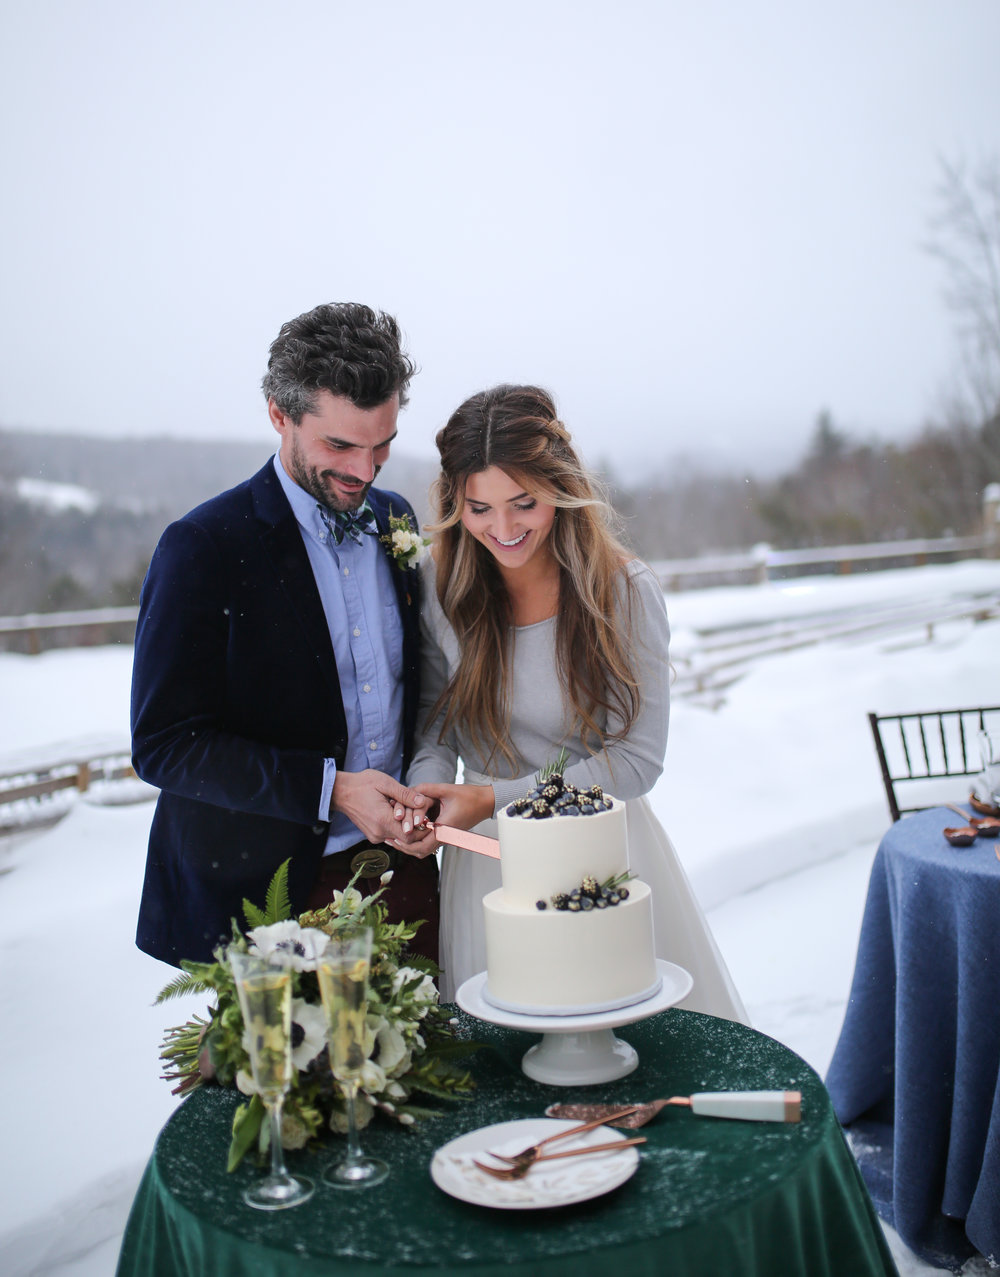 Winter Styled Shoot, Stowe Vermont (332 of 341).jpg